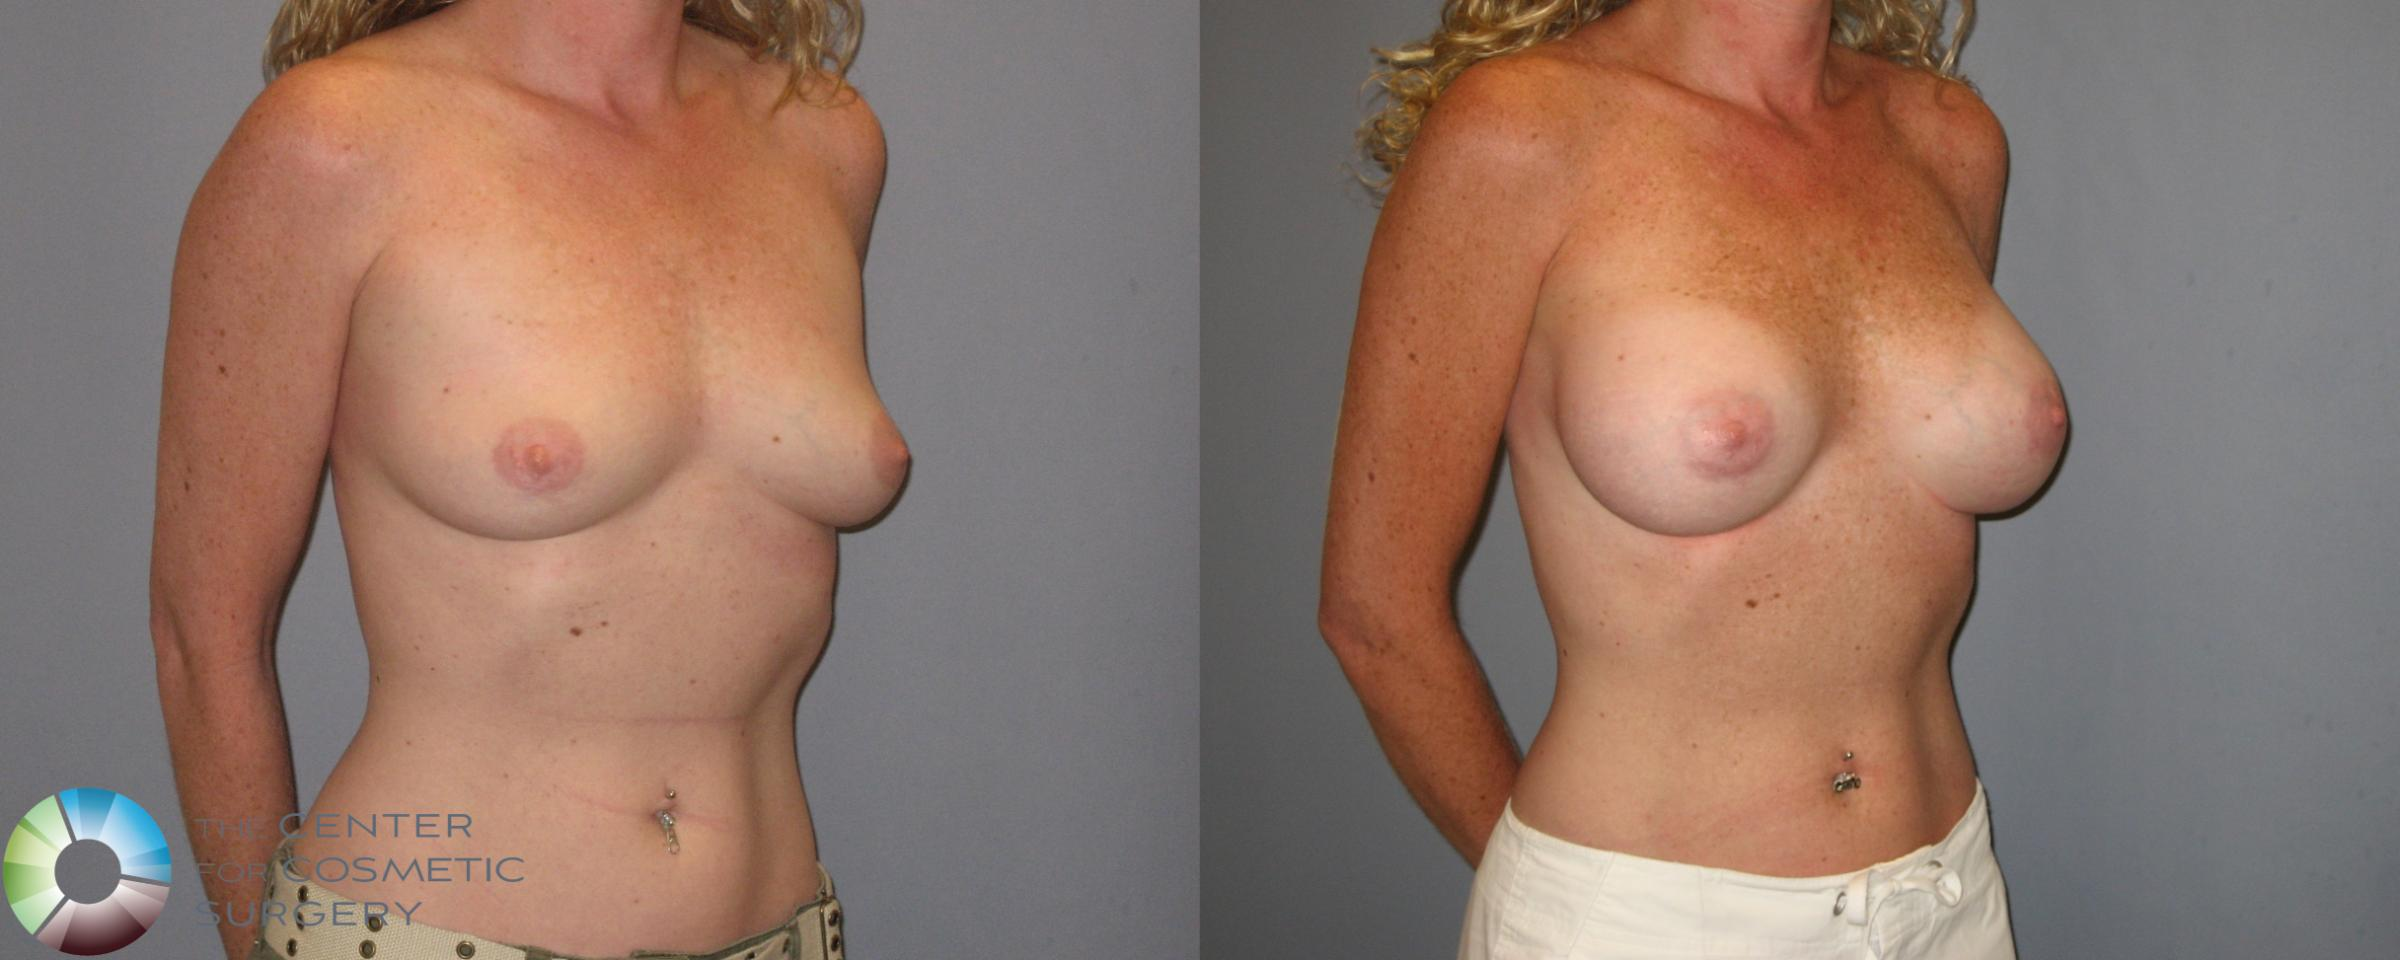 Breast Augmentation Case 186 Before & After View #1 | Golden, CO | The Center for Cosmetic Surgery